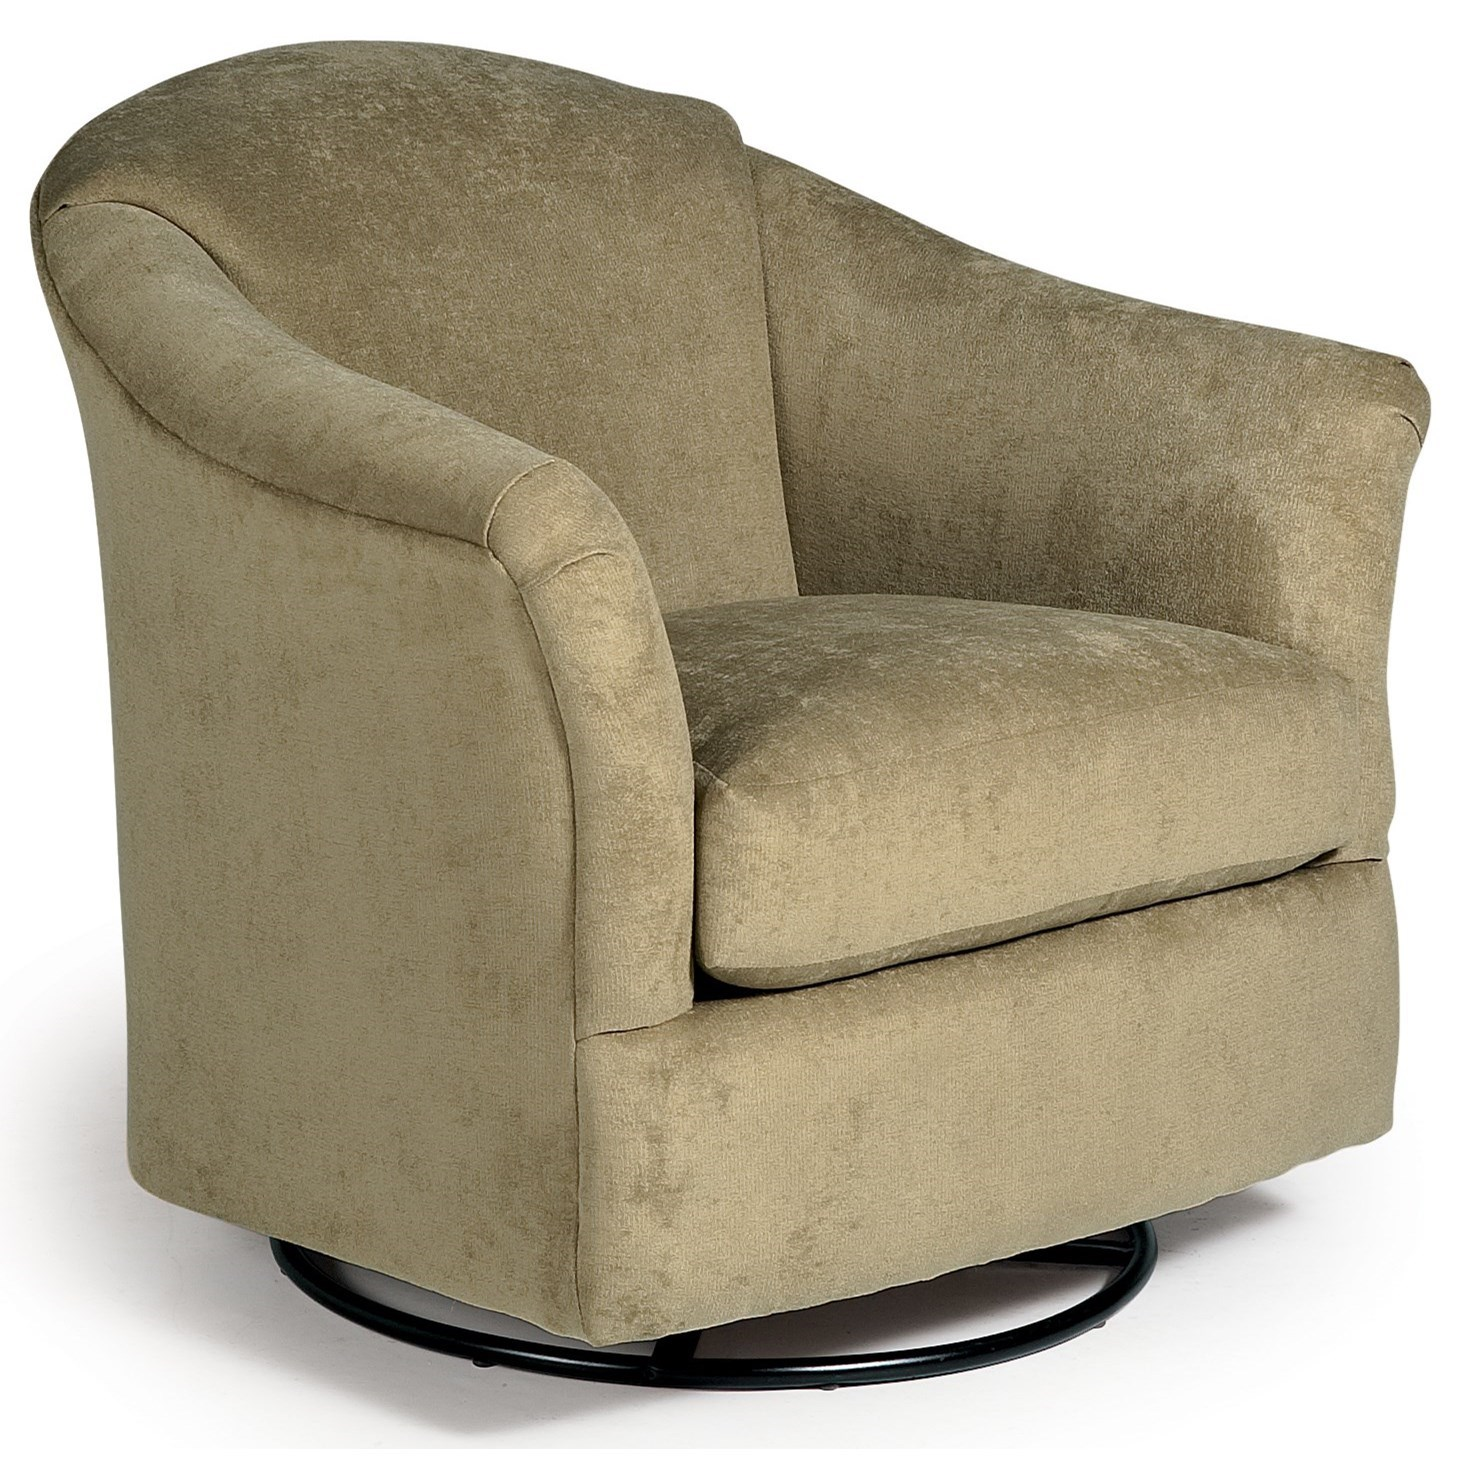 Best Home Furnishings Chairs - Swivel Glide Swivel Chair - Item Number: 2878